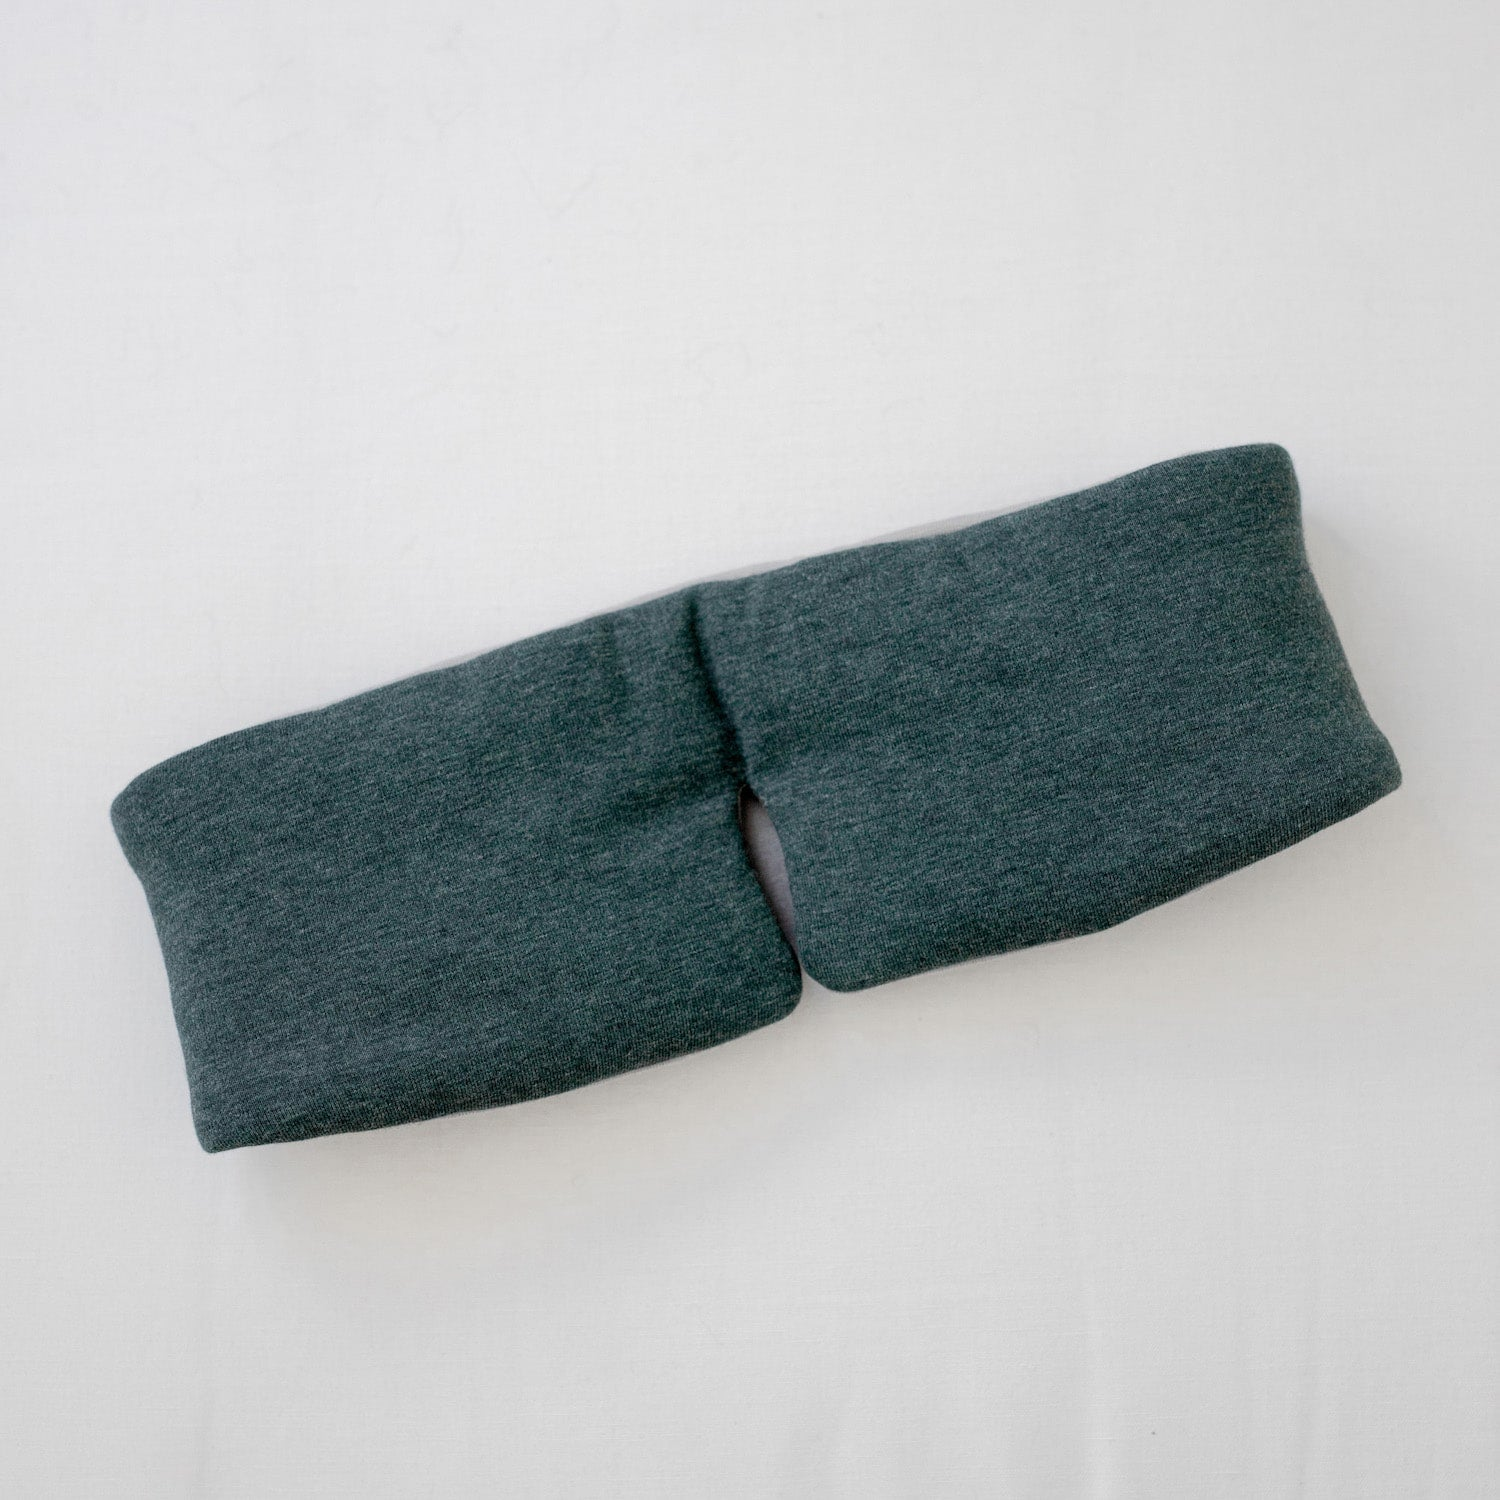 Lahgo Sleepwear Restore Sleep Mask - #Moonstone/Forest